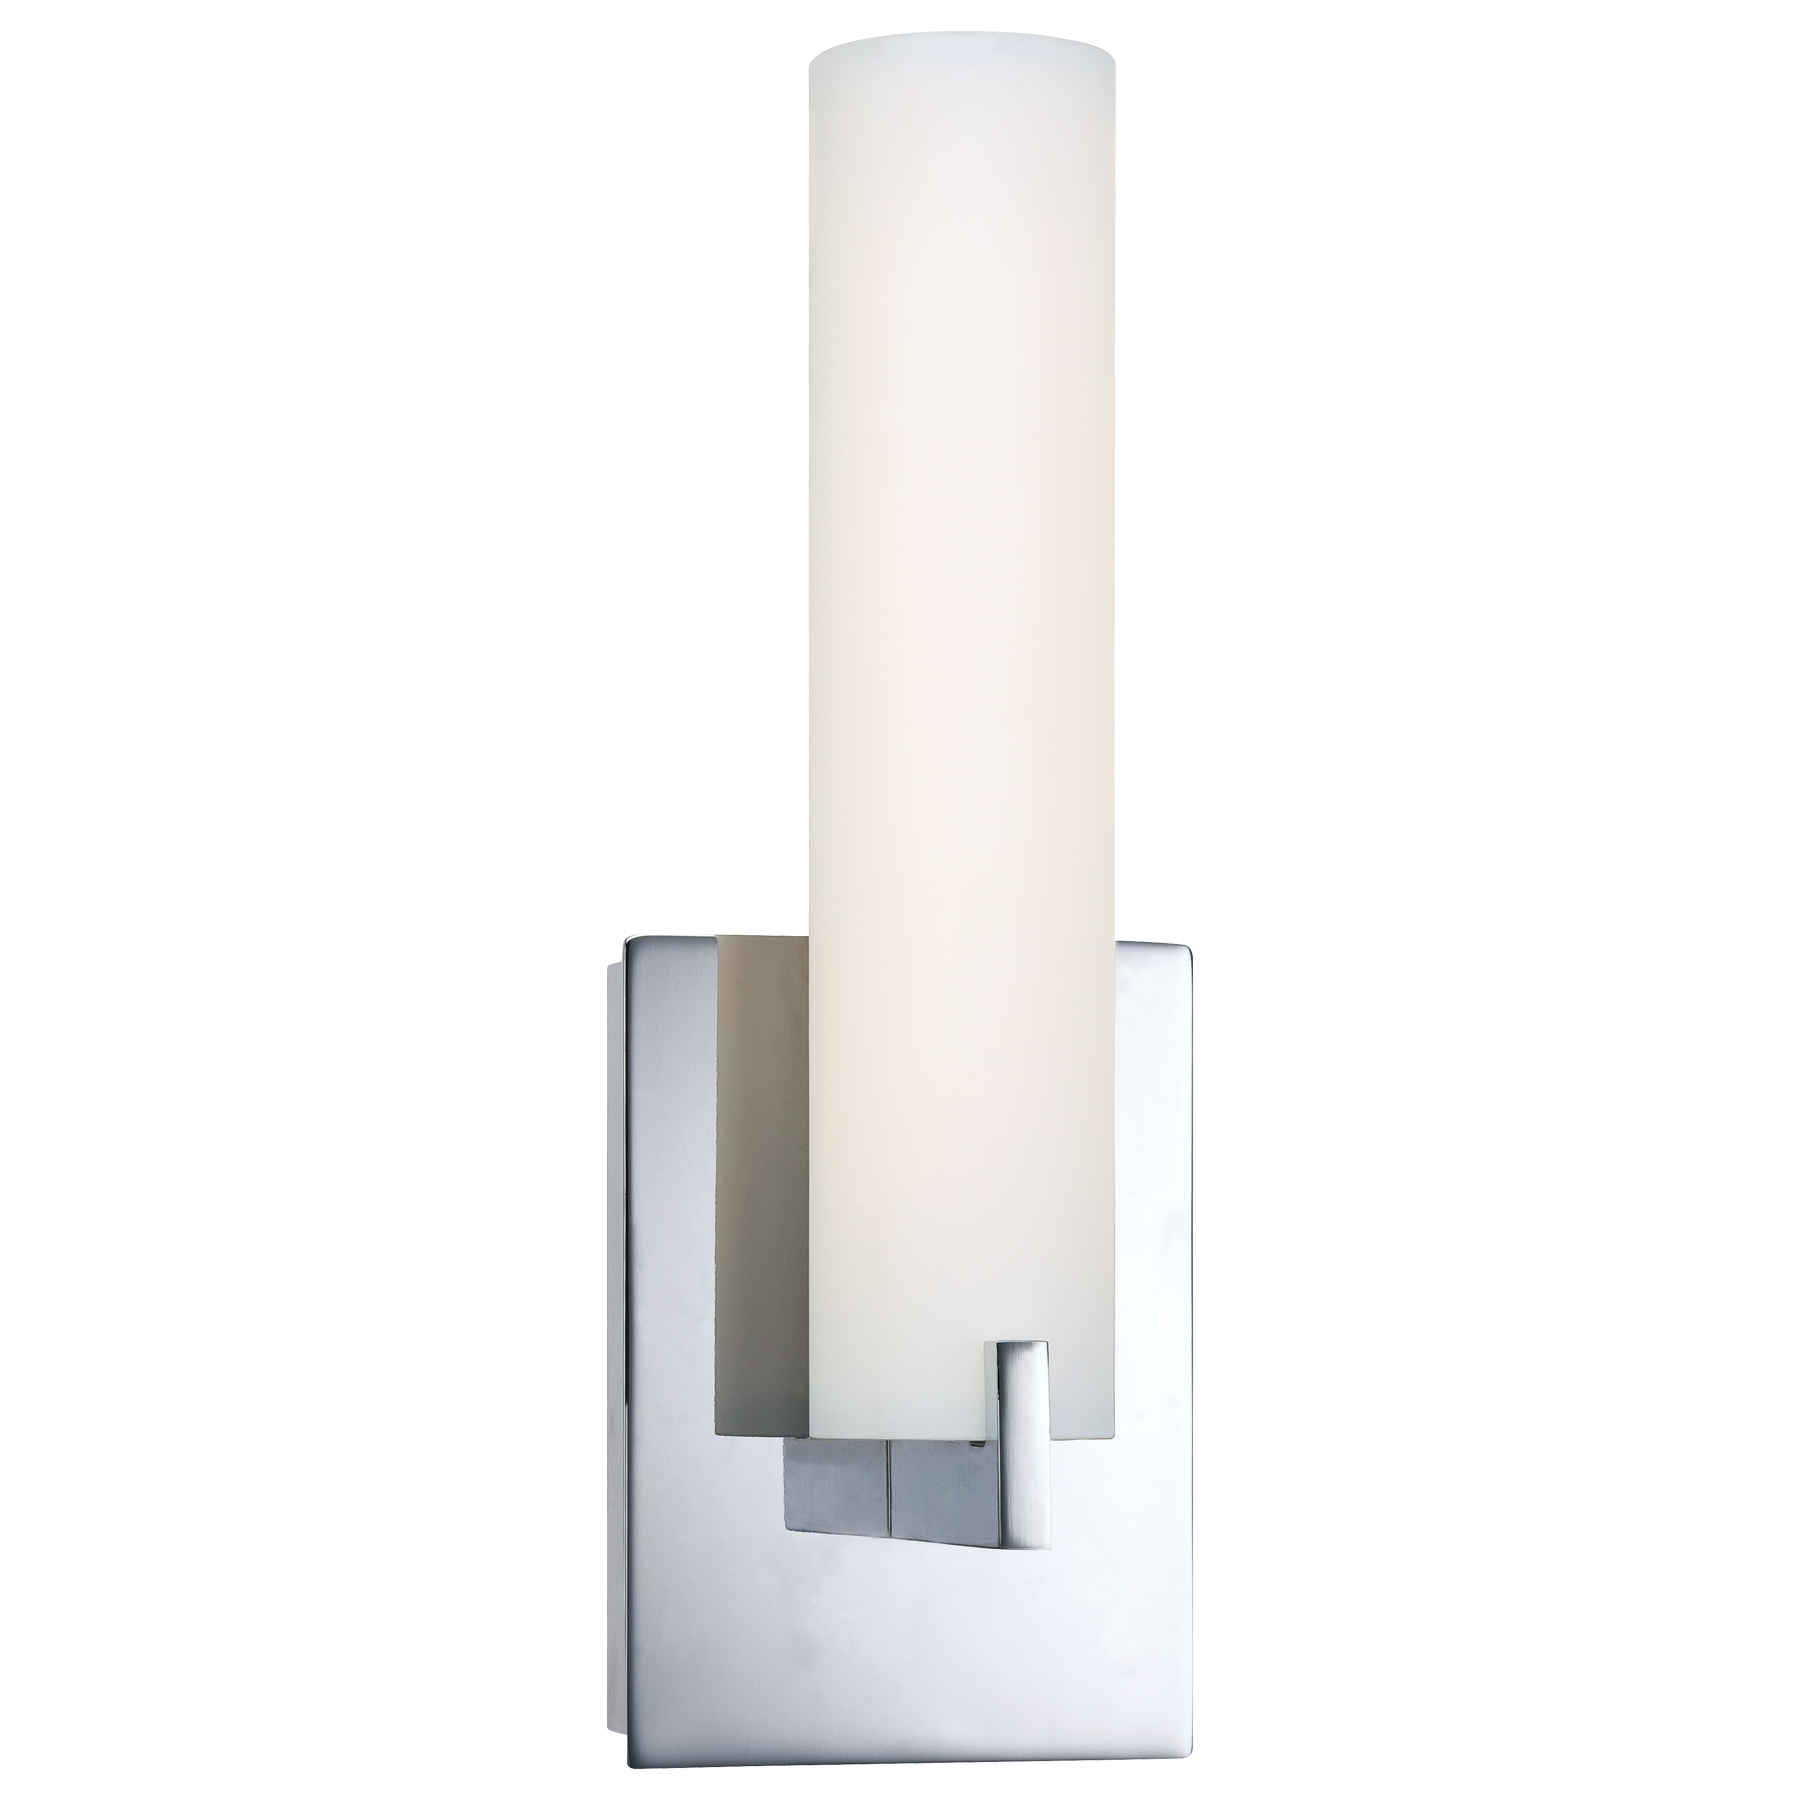 Wall Sconces For Bathroom : Tube LED Vanity Wall Sconce by George Kovacs P5040-077-L